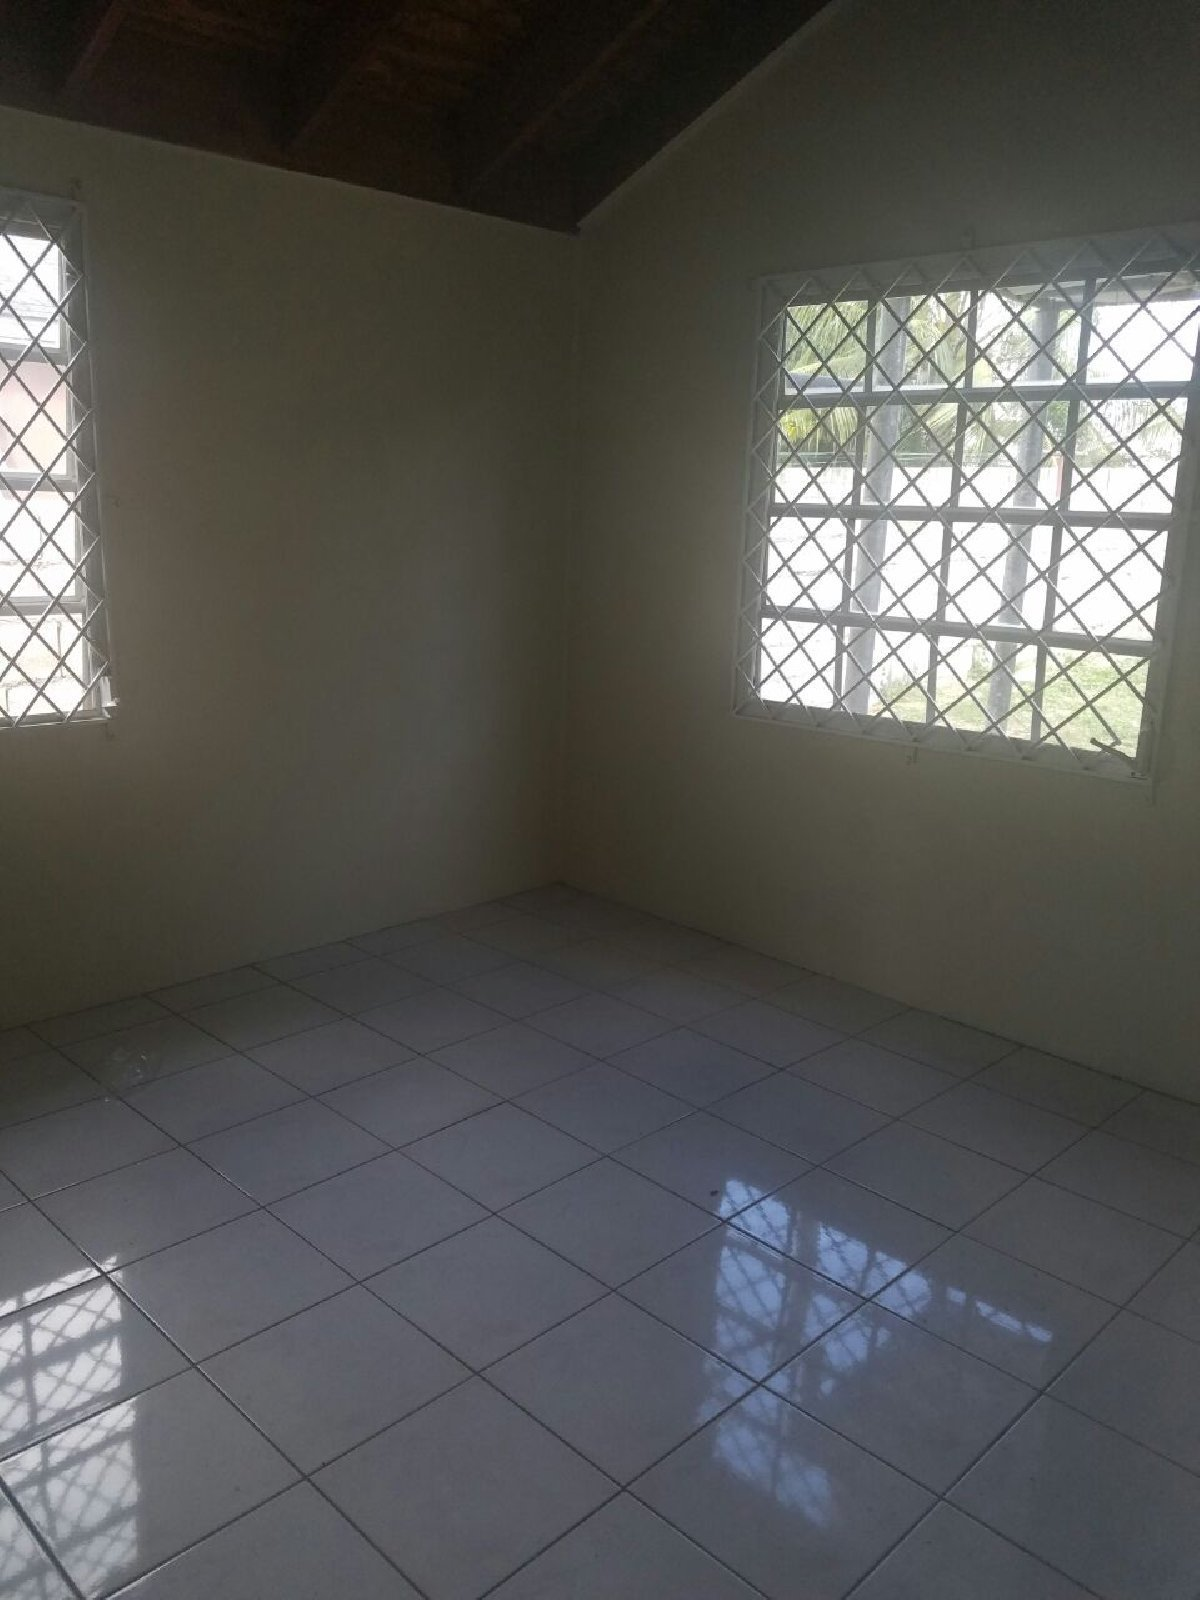 2 Bedroom 1 Bathroom House for rent in Whitewater Meadows